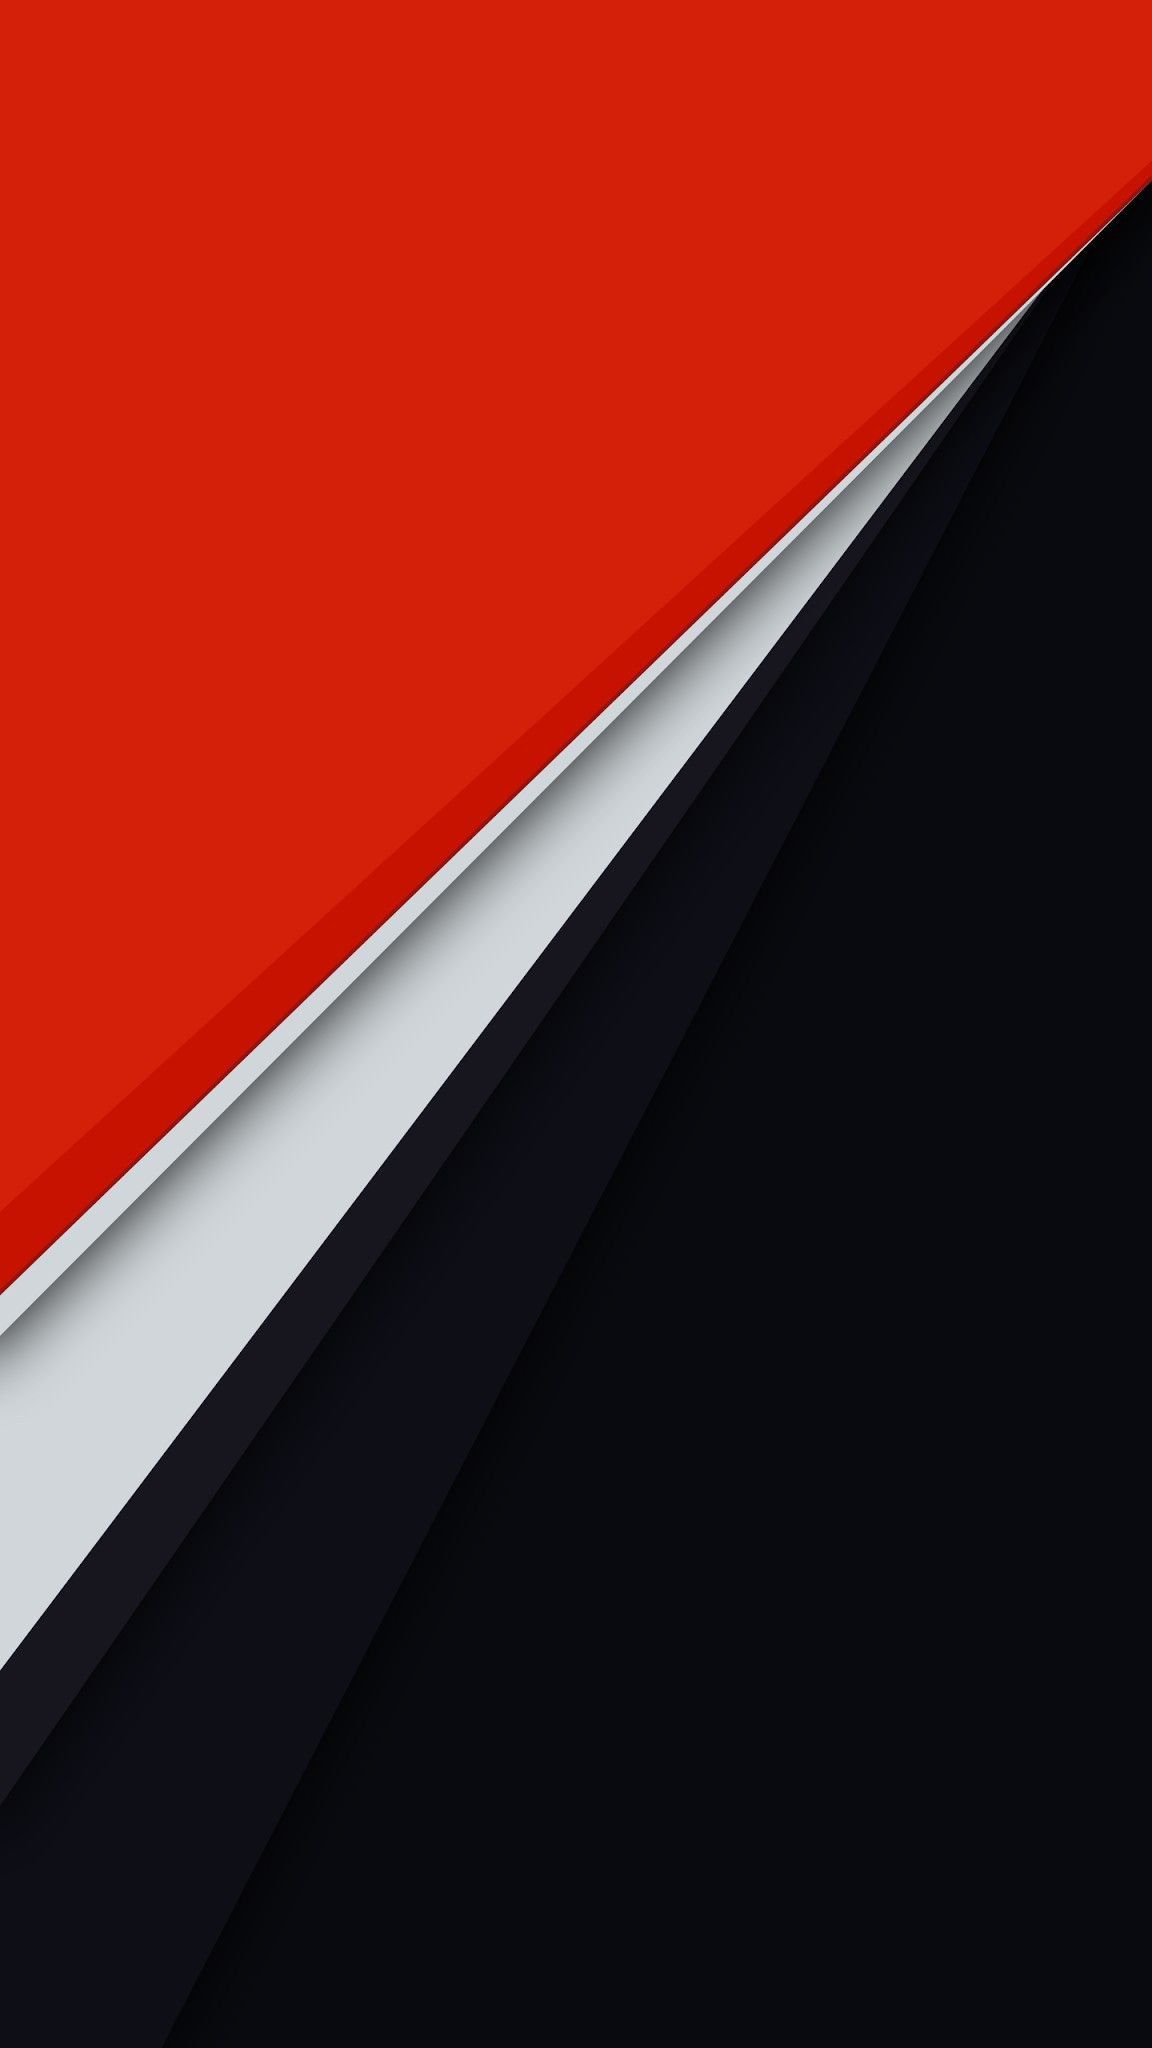 Material Red and Black iPhone Wallpaper